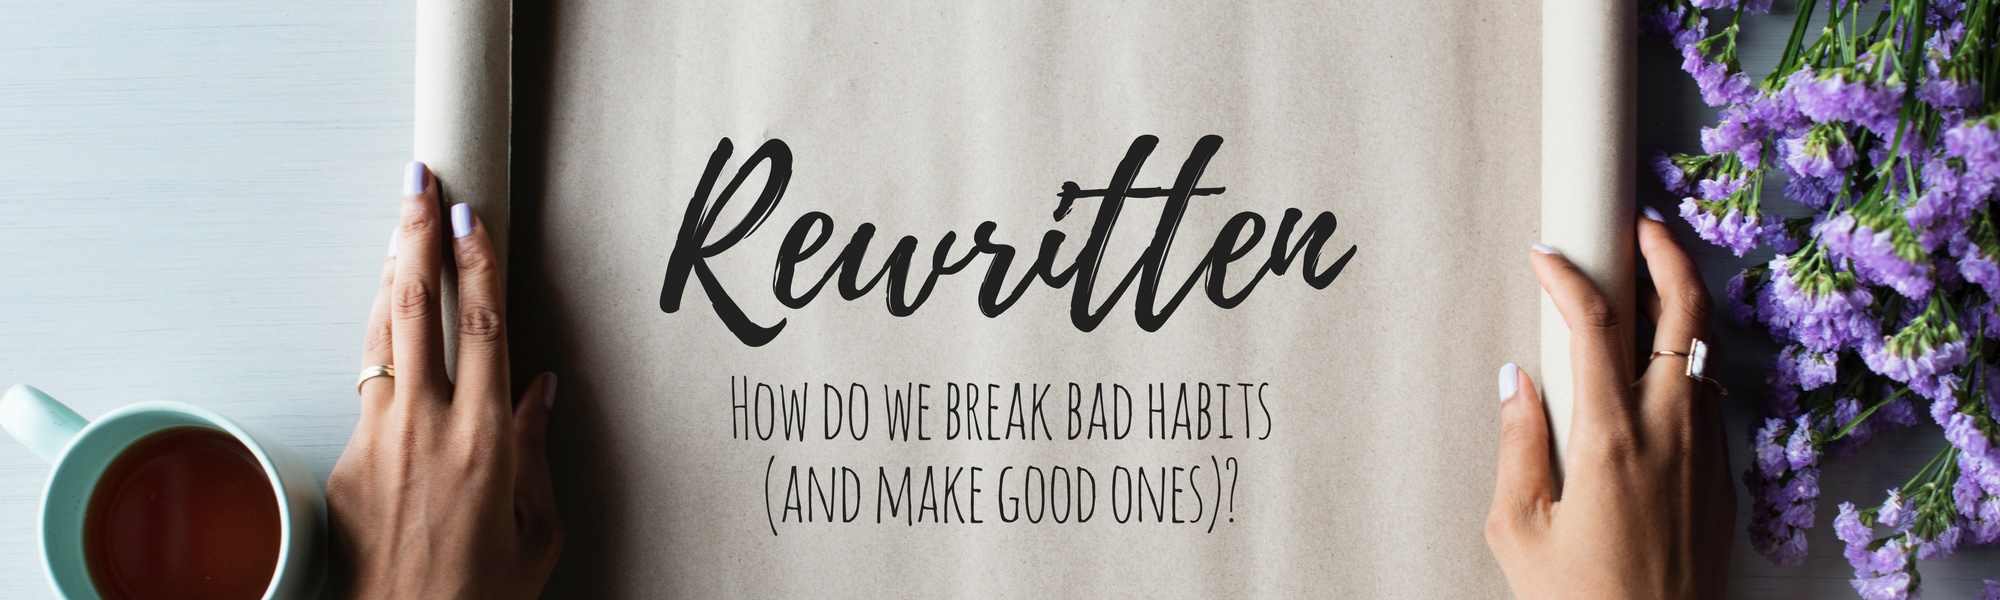 Rewritten: How do we break a bad habit (and make good ones)?